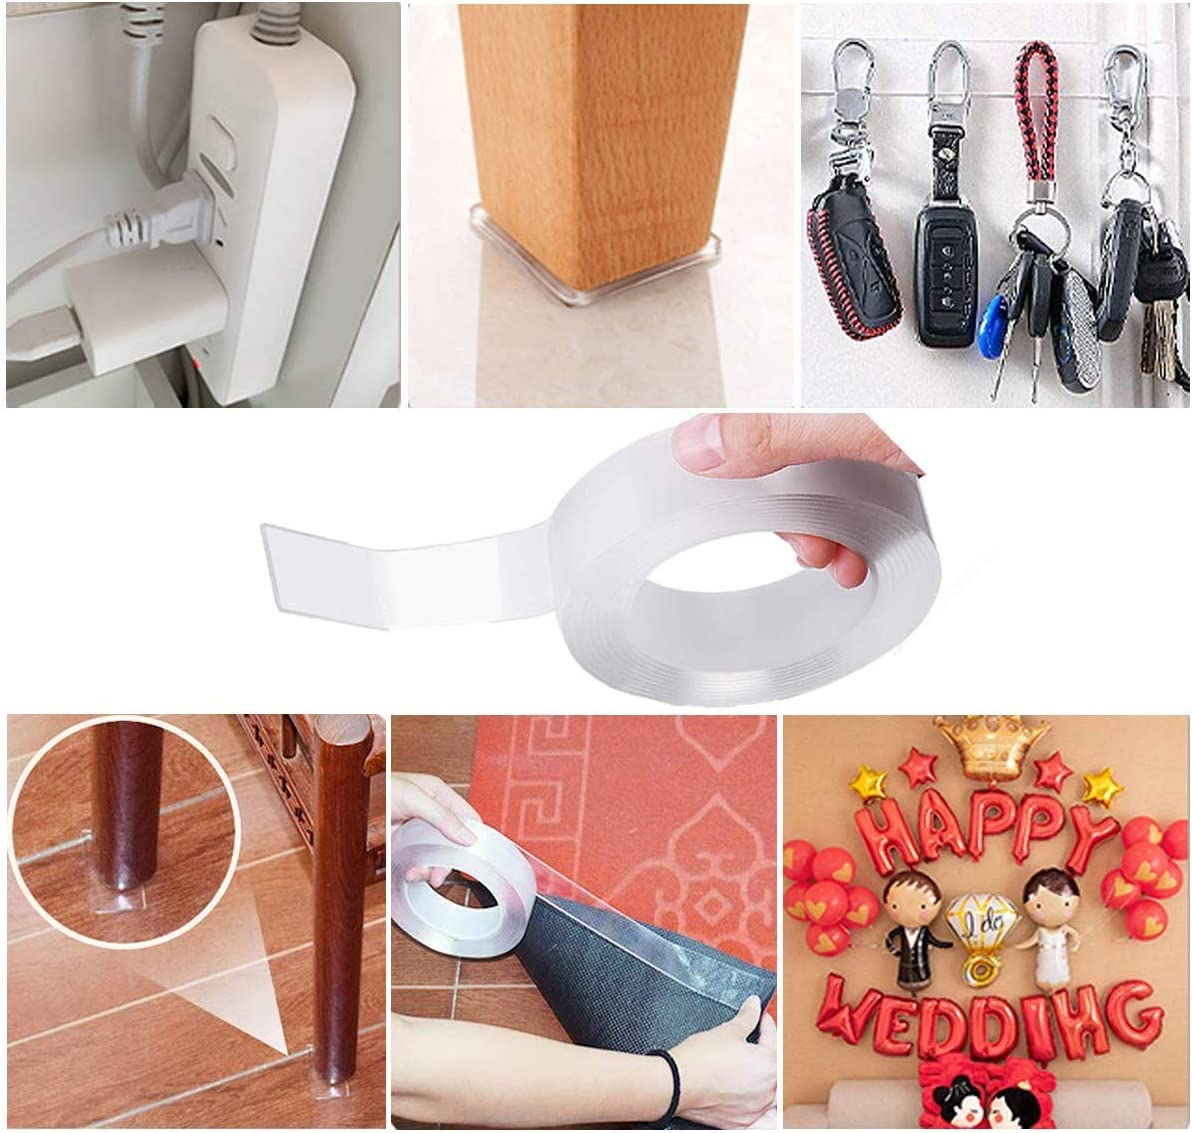 Multifunctional Reusable Nano Adhesive Tape,No-Trace Removable Washable Strong Gel Anti-Slip Adhesive Carpet Rug Tape,Transparent Double Sided Tape 9.8 ft for Wall,Carpet Photos Fixing 3M Kitchen